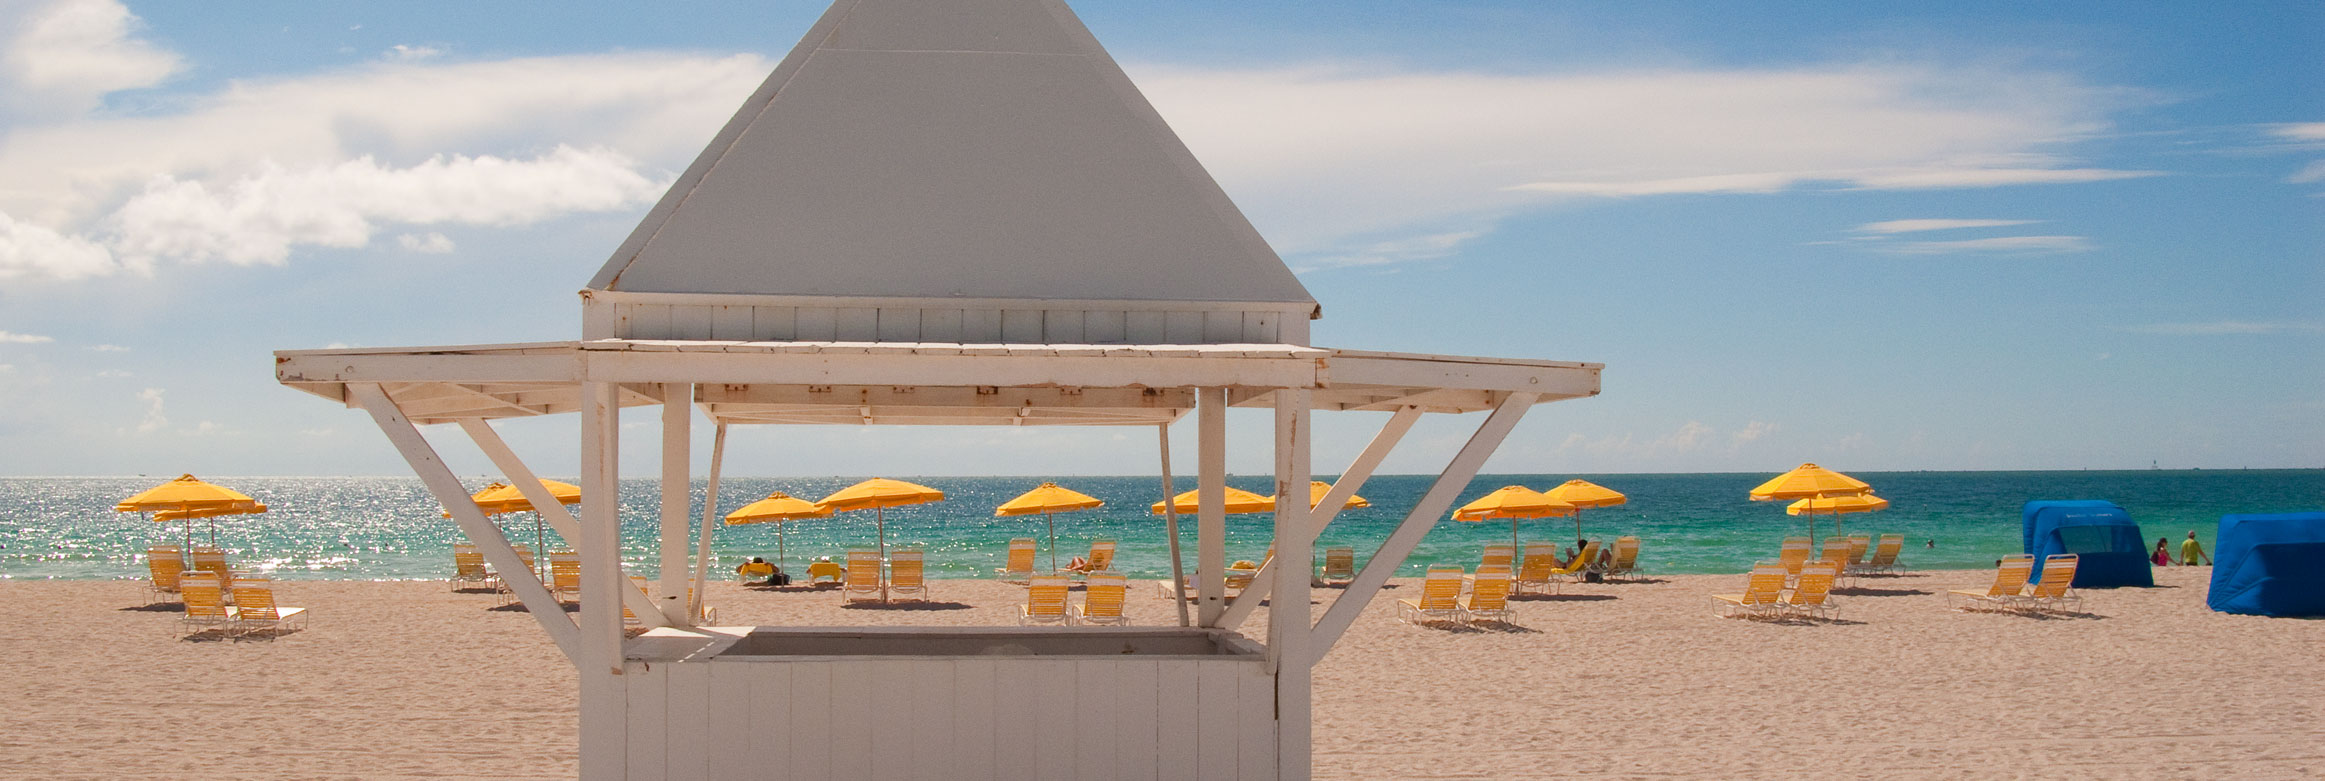 South_Beach_Yellow